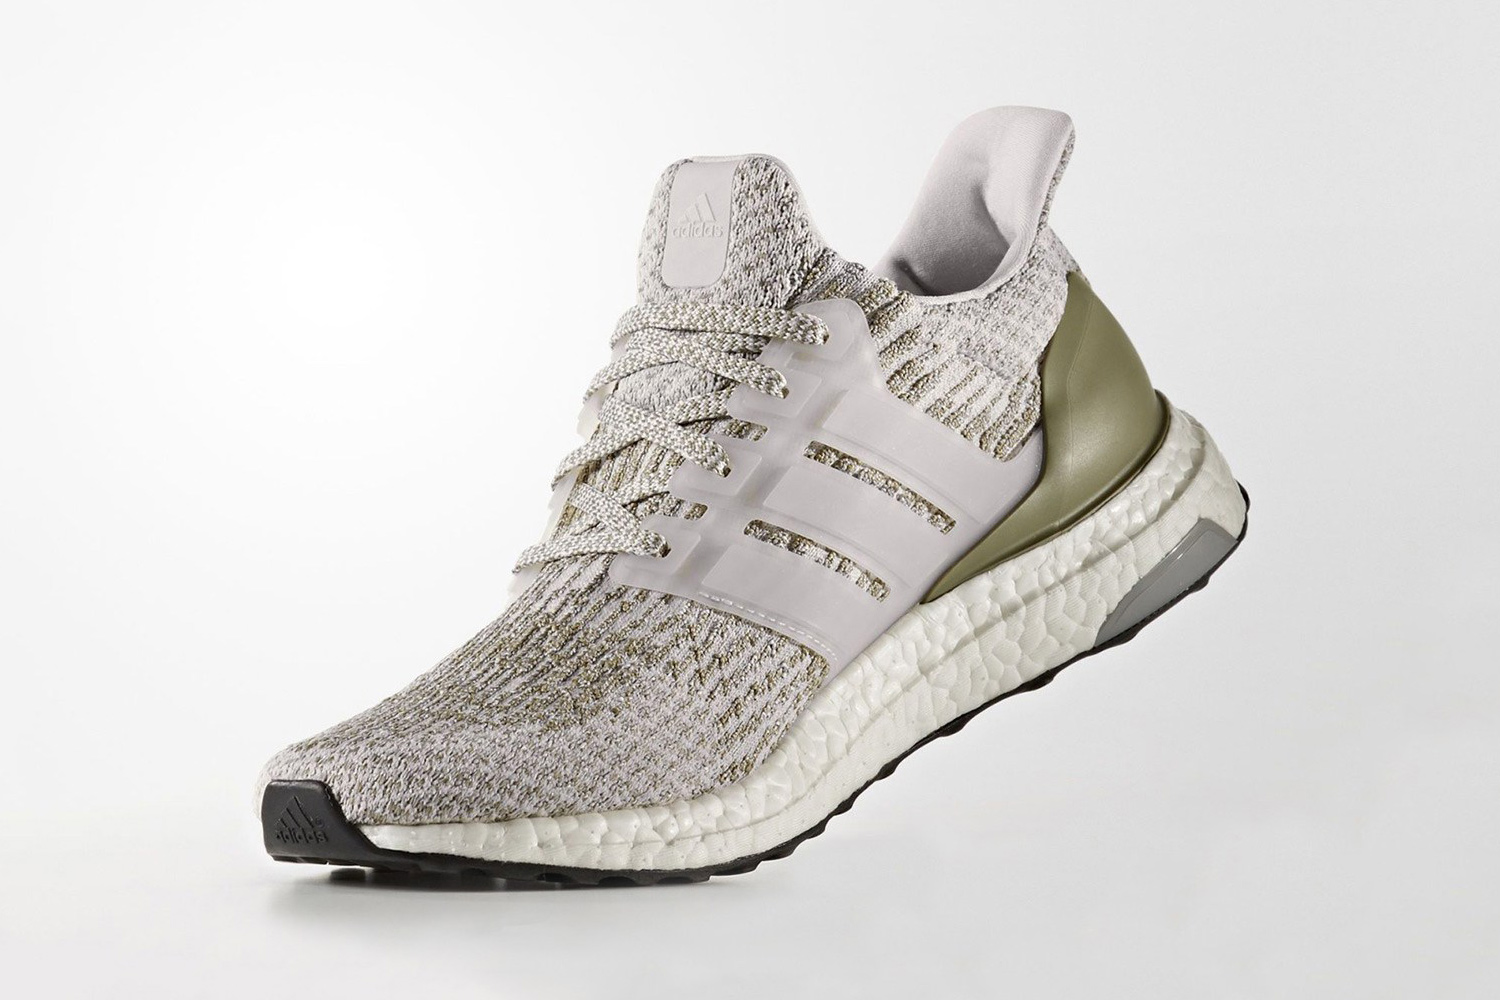 adidas-ultra-boost-3-0-olive-copper-01